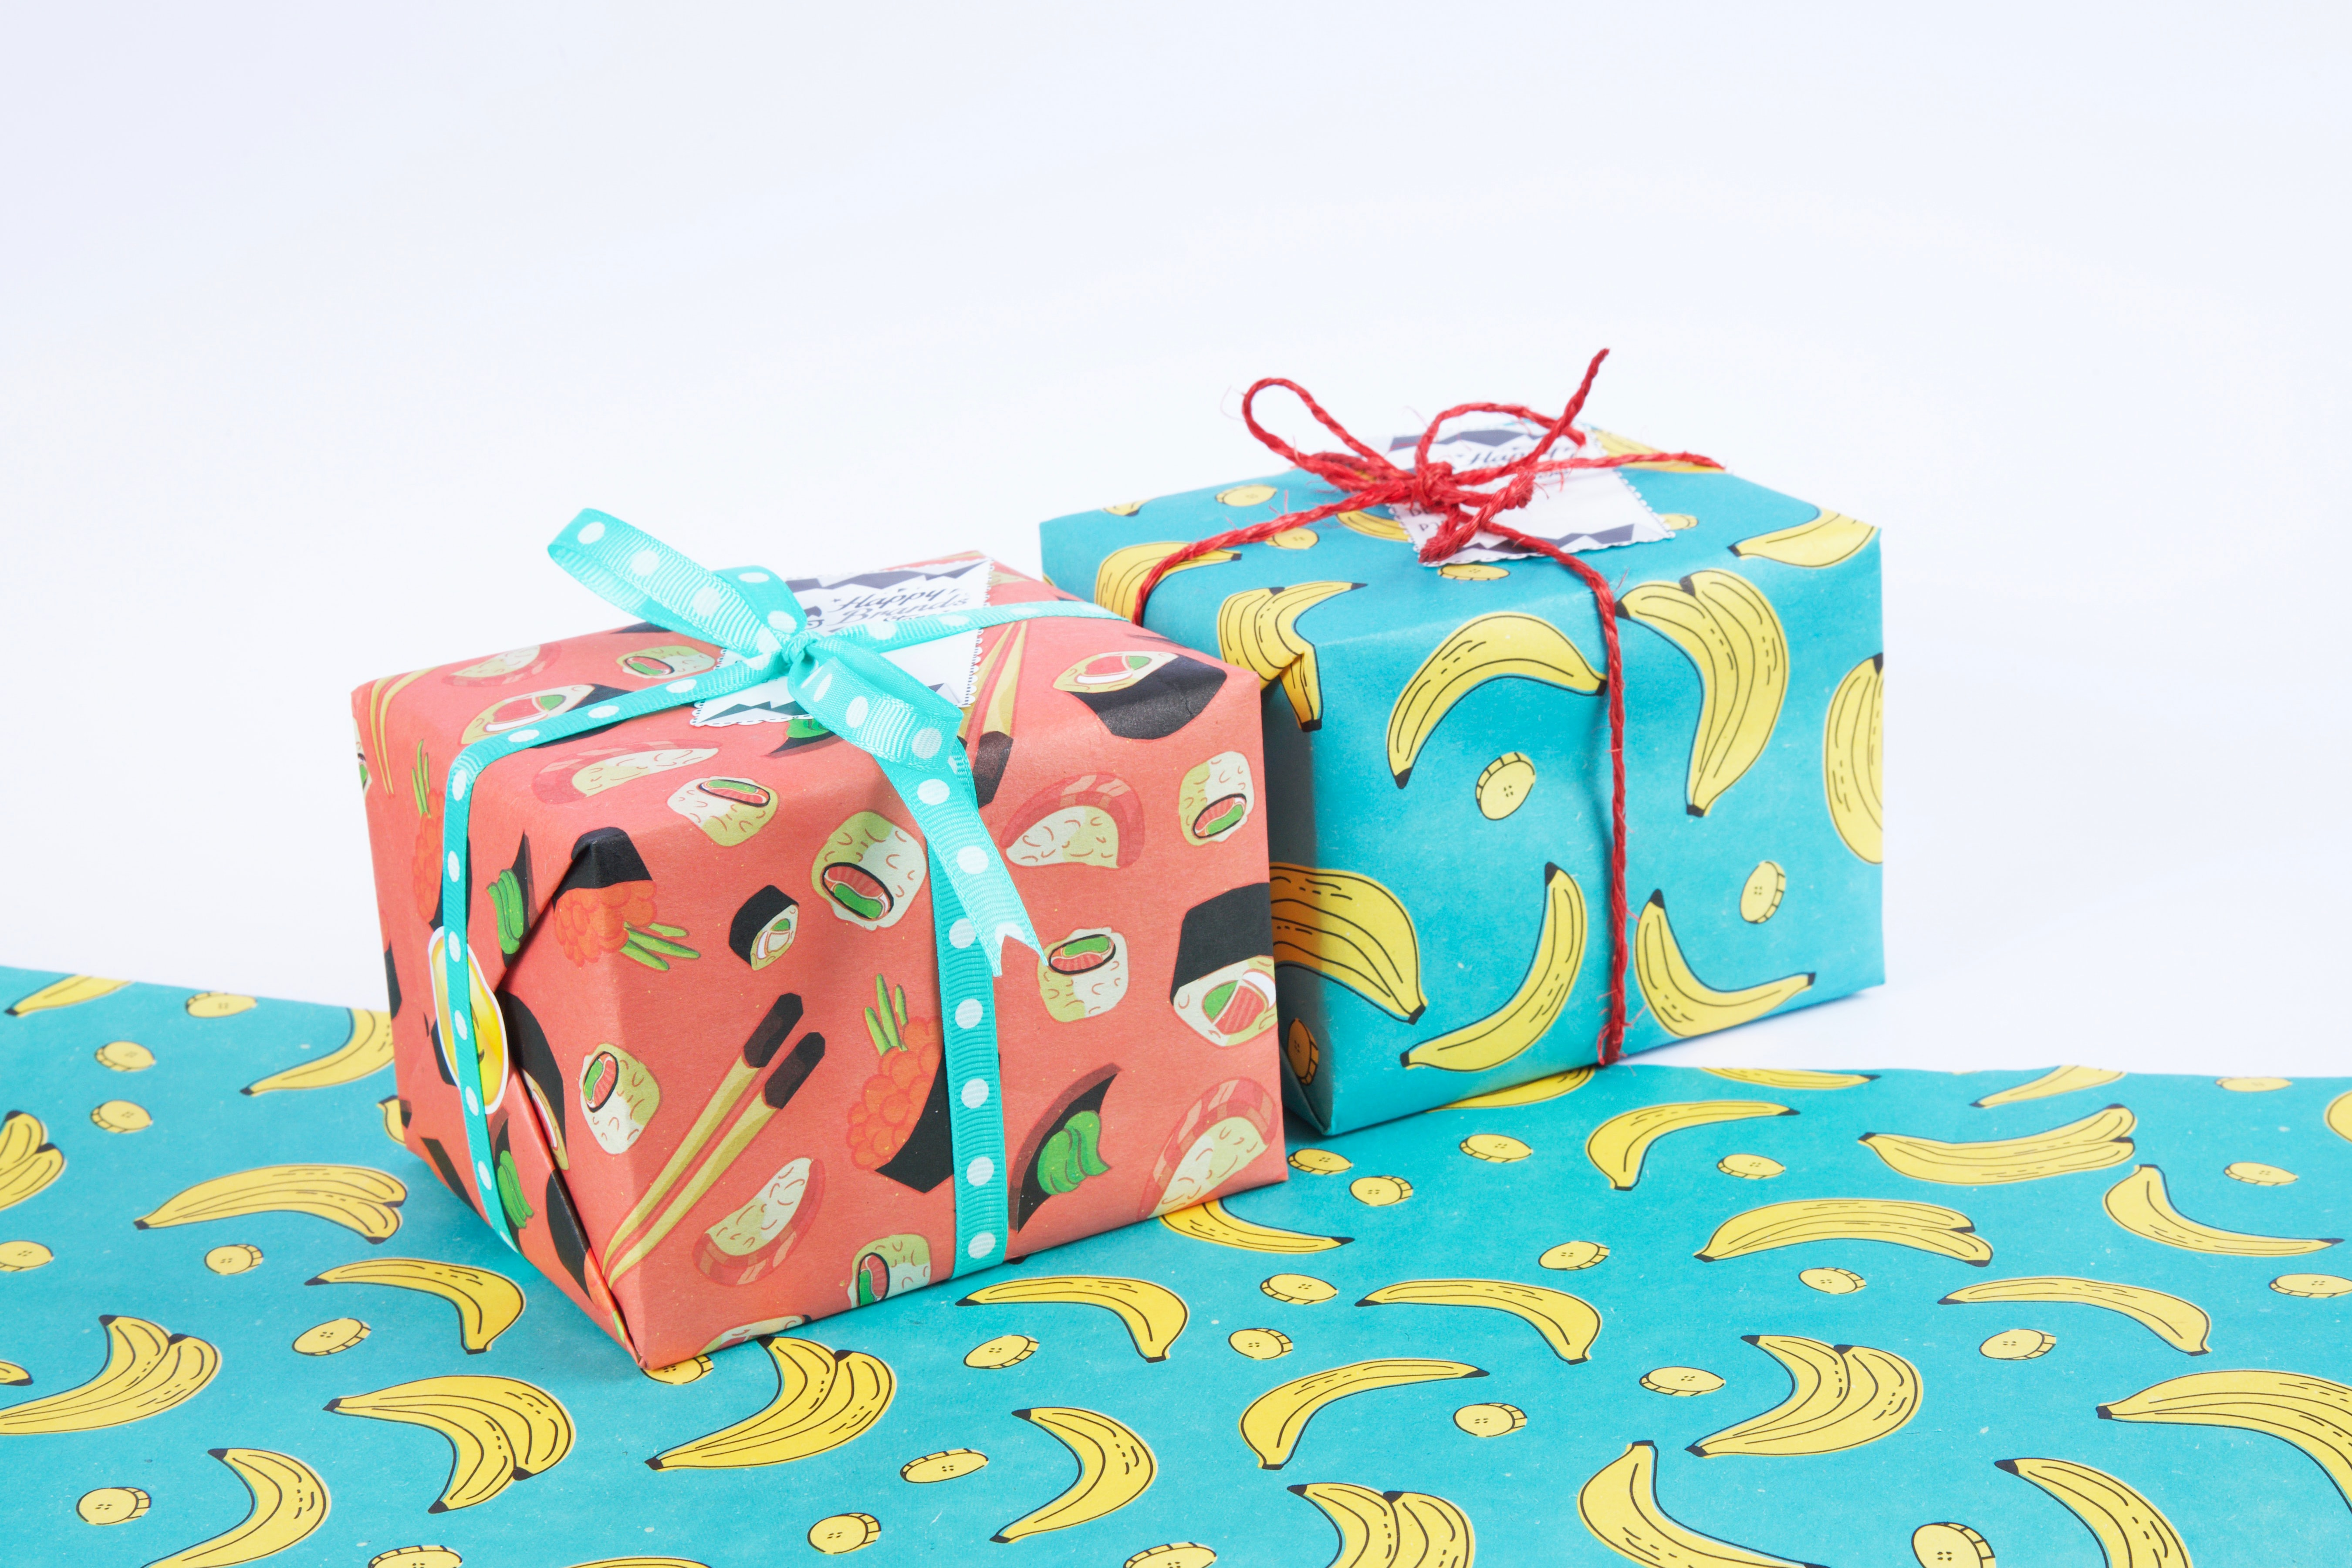 Food-based wrapping paper covers two gifts. Gifts are a great way to recognize remote teammates.